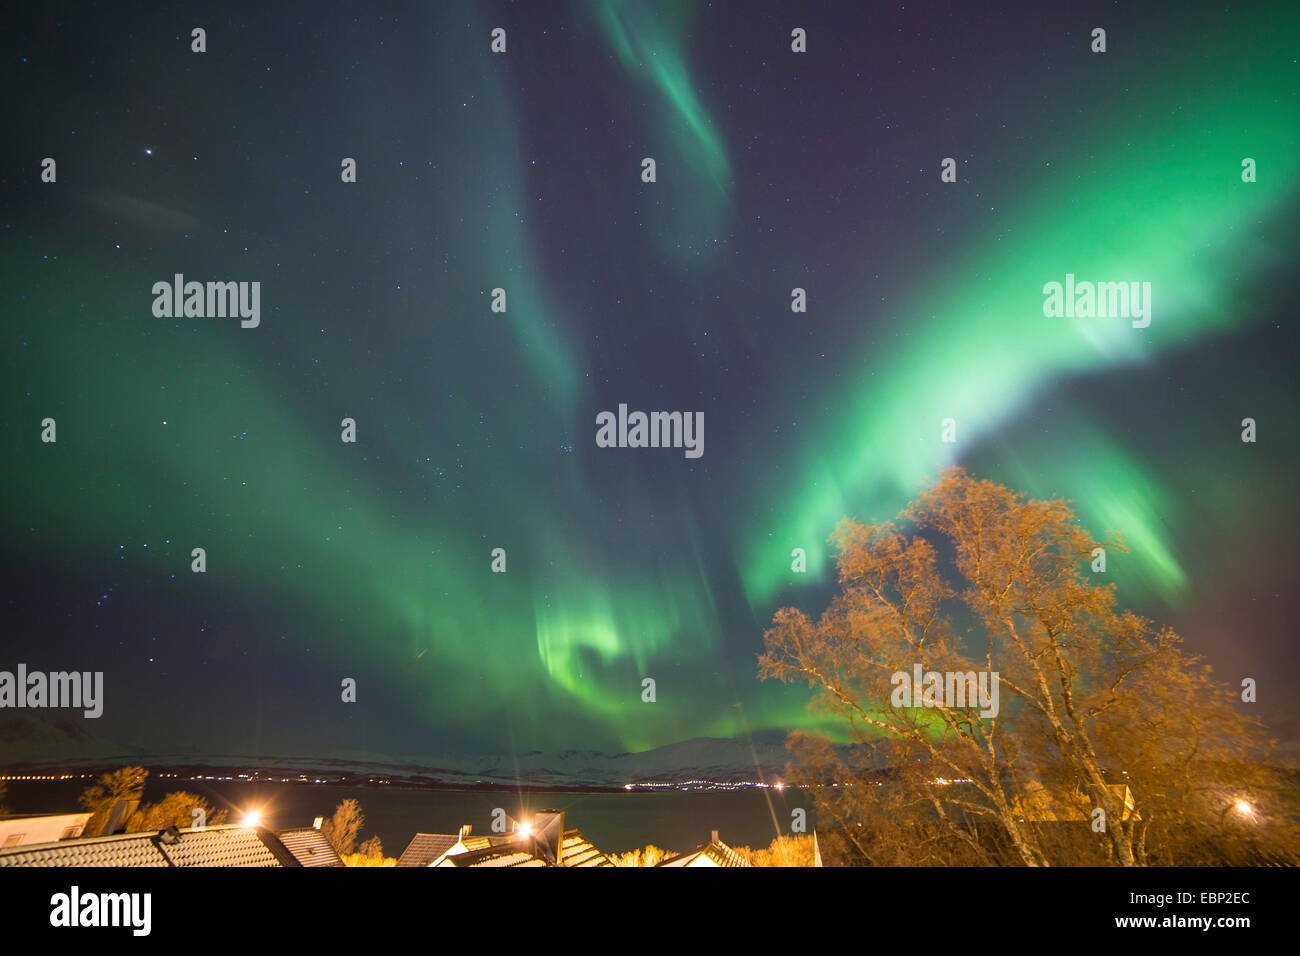 aurora with Orion and Jupiter, Norway, Troms, Tromsoe - Stock Image